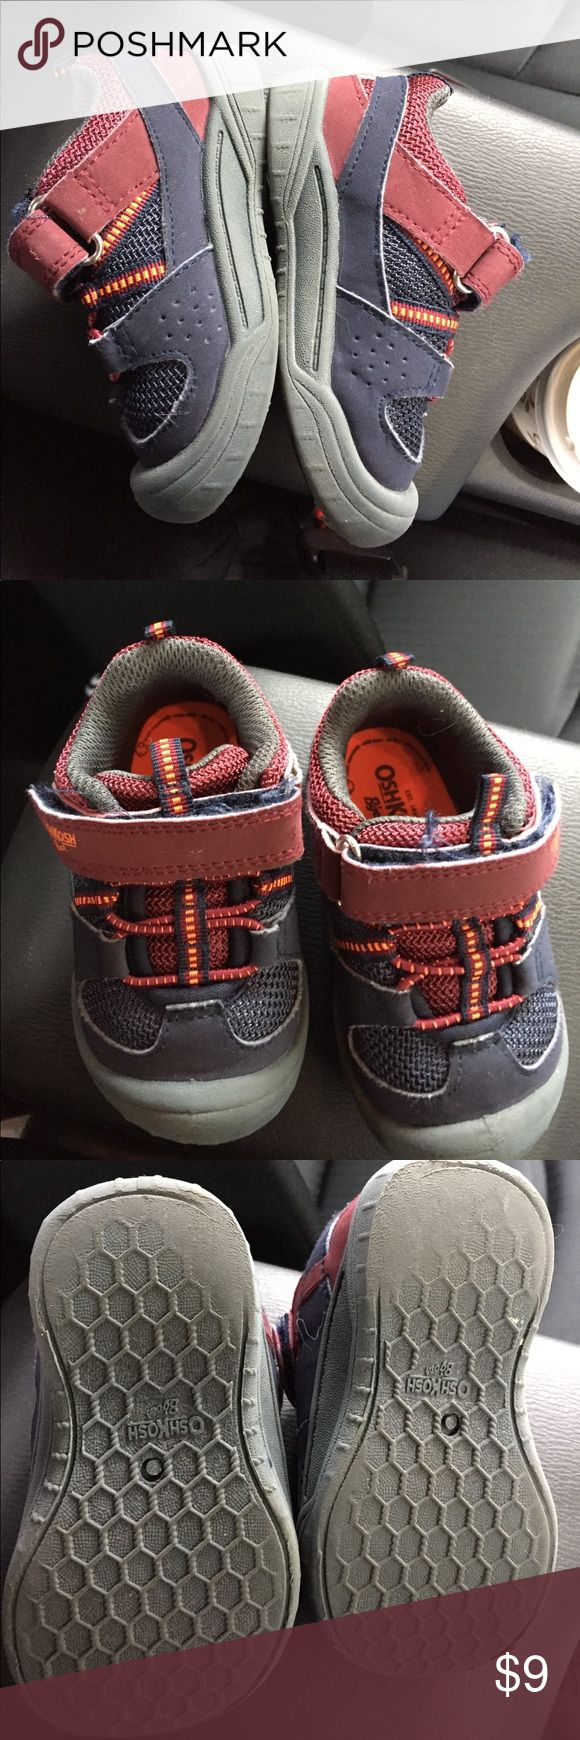 Osh Kosh Toddler Sneakers Boys Size 5.5 Having had a run on the playground, these toddler sneakers have seen their fair share of swings and ambitious first steps. Be the next owner of these comfy, magical first step shoes. Size 5.5 and in good condition. Osh Kosh Shoes Sneakers